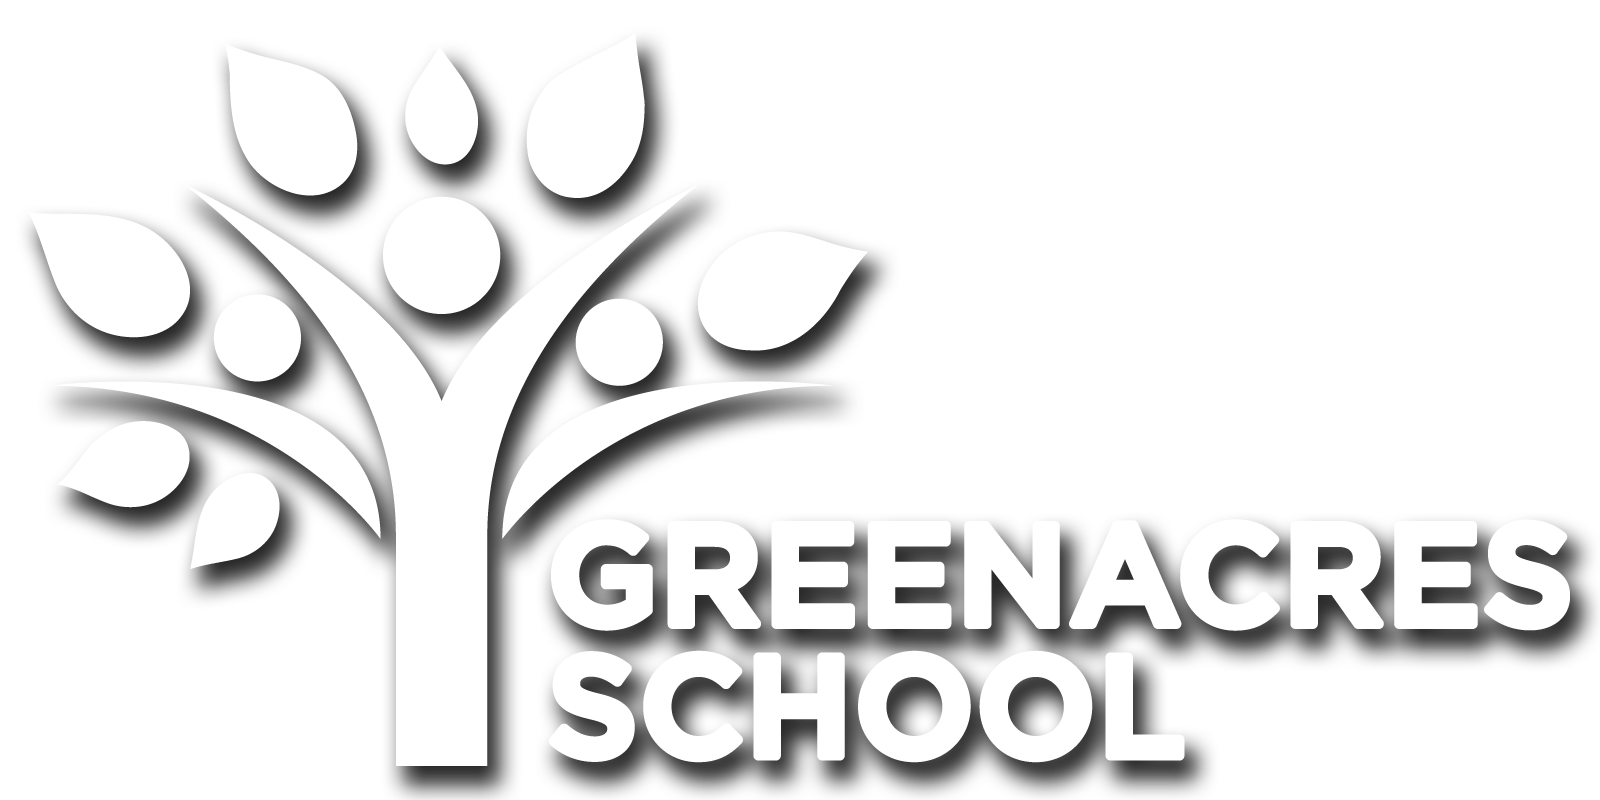 Greenacres School logo